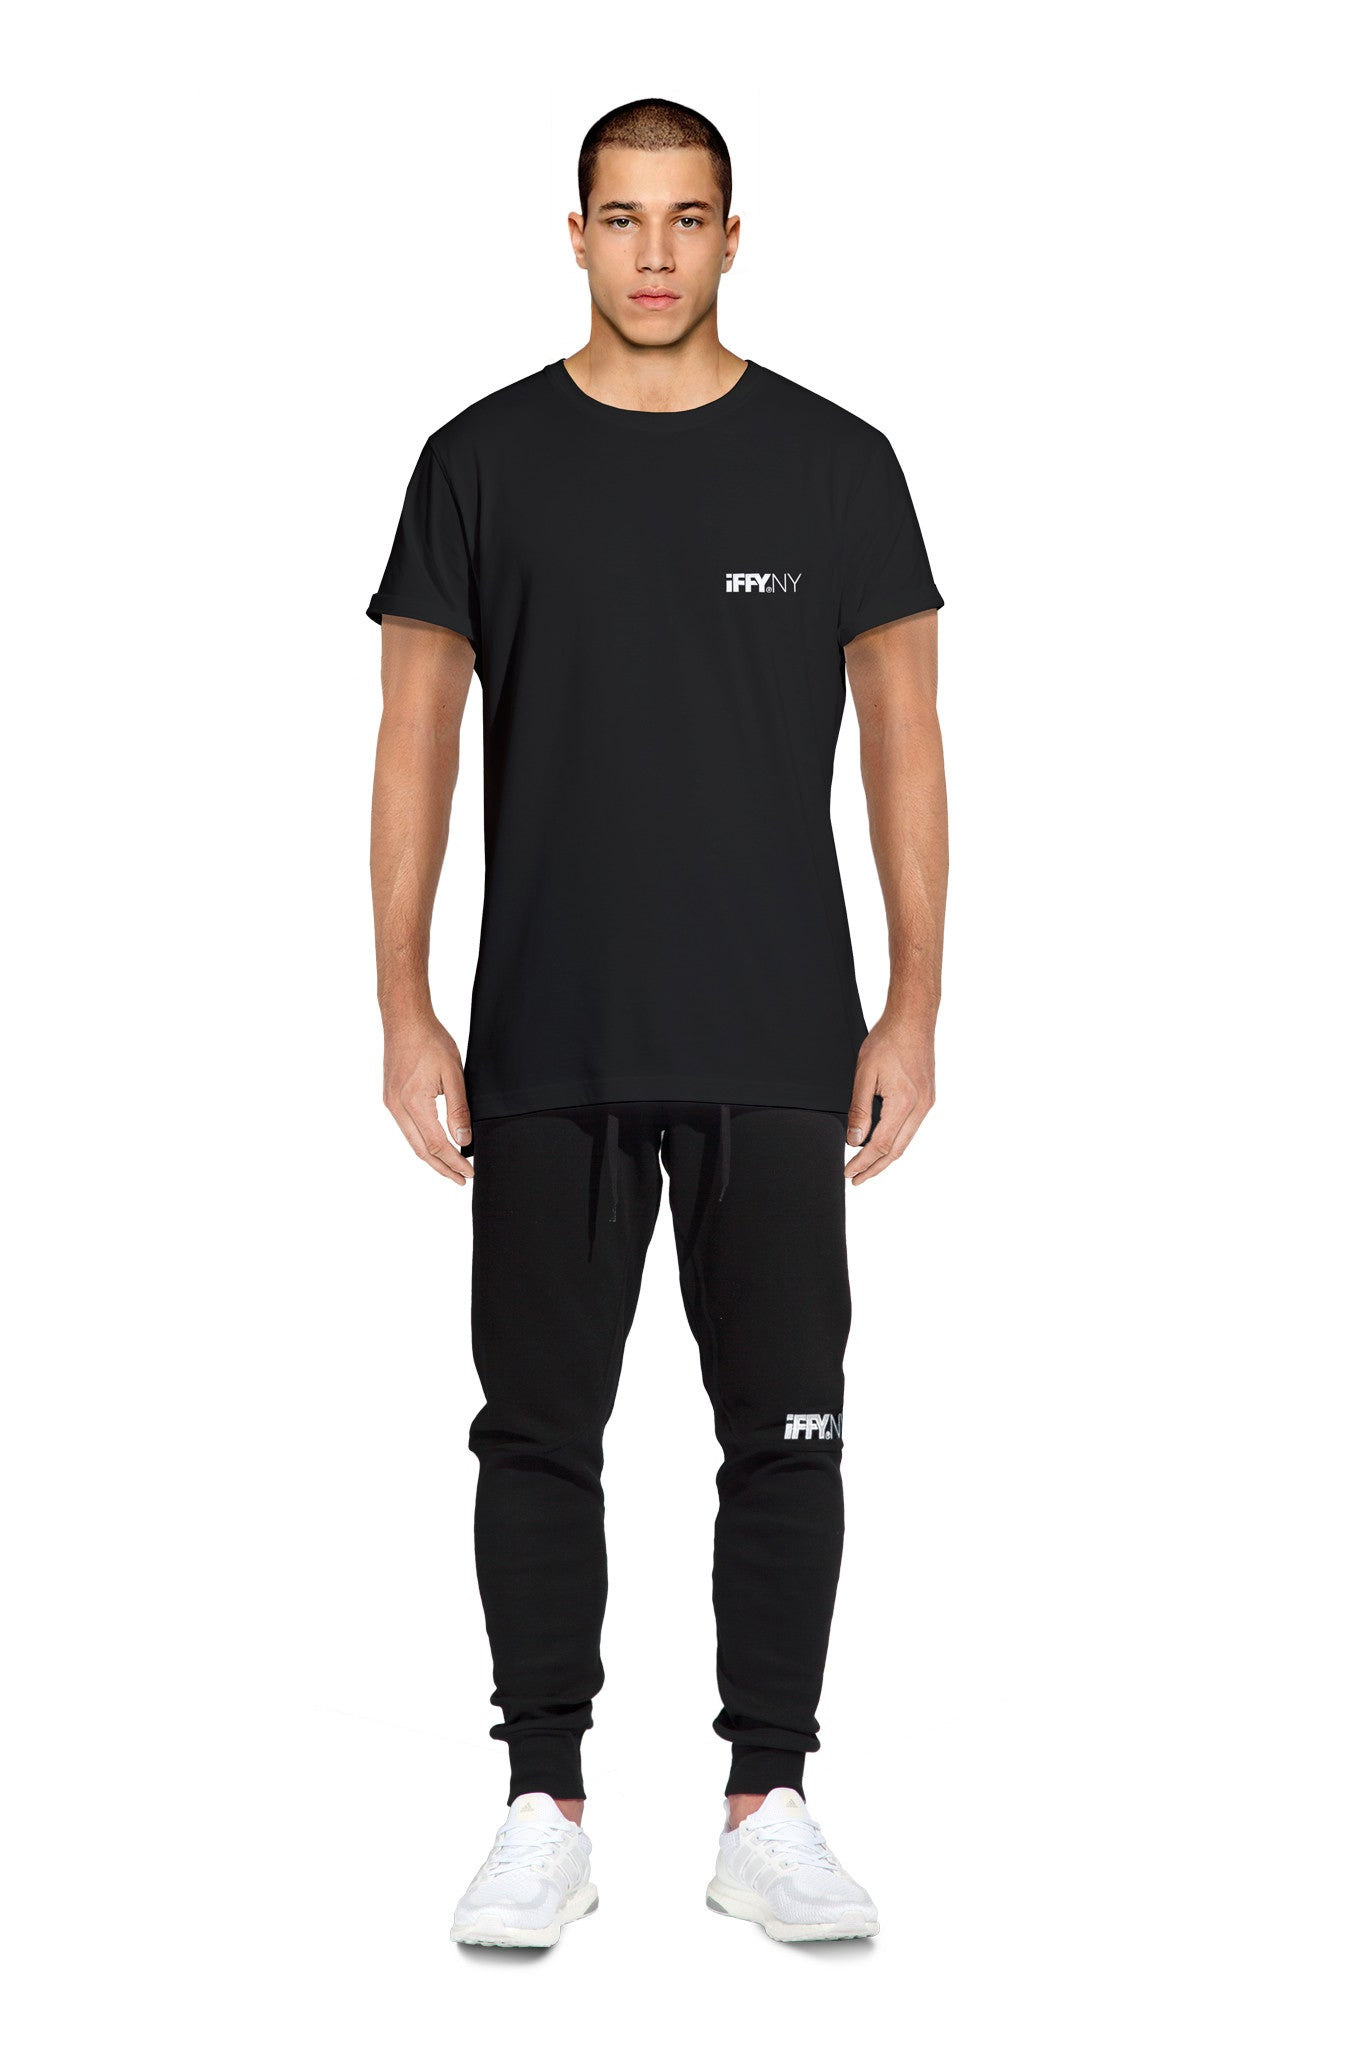 IFFY NY Clarke T-shirt in black